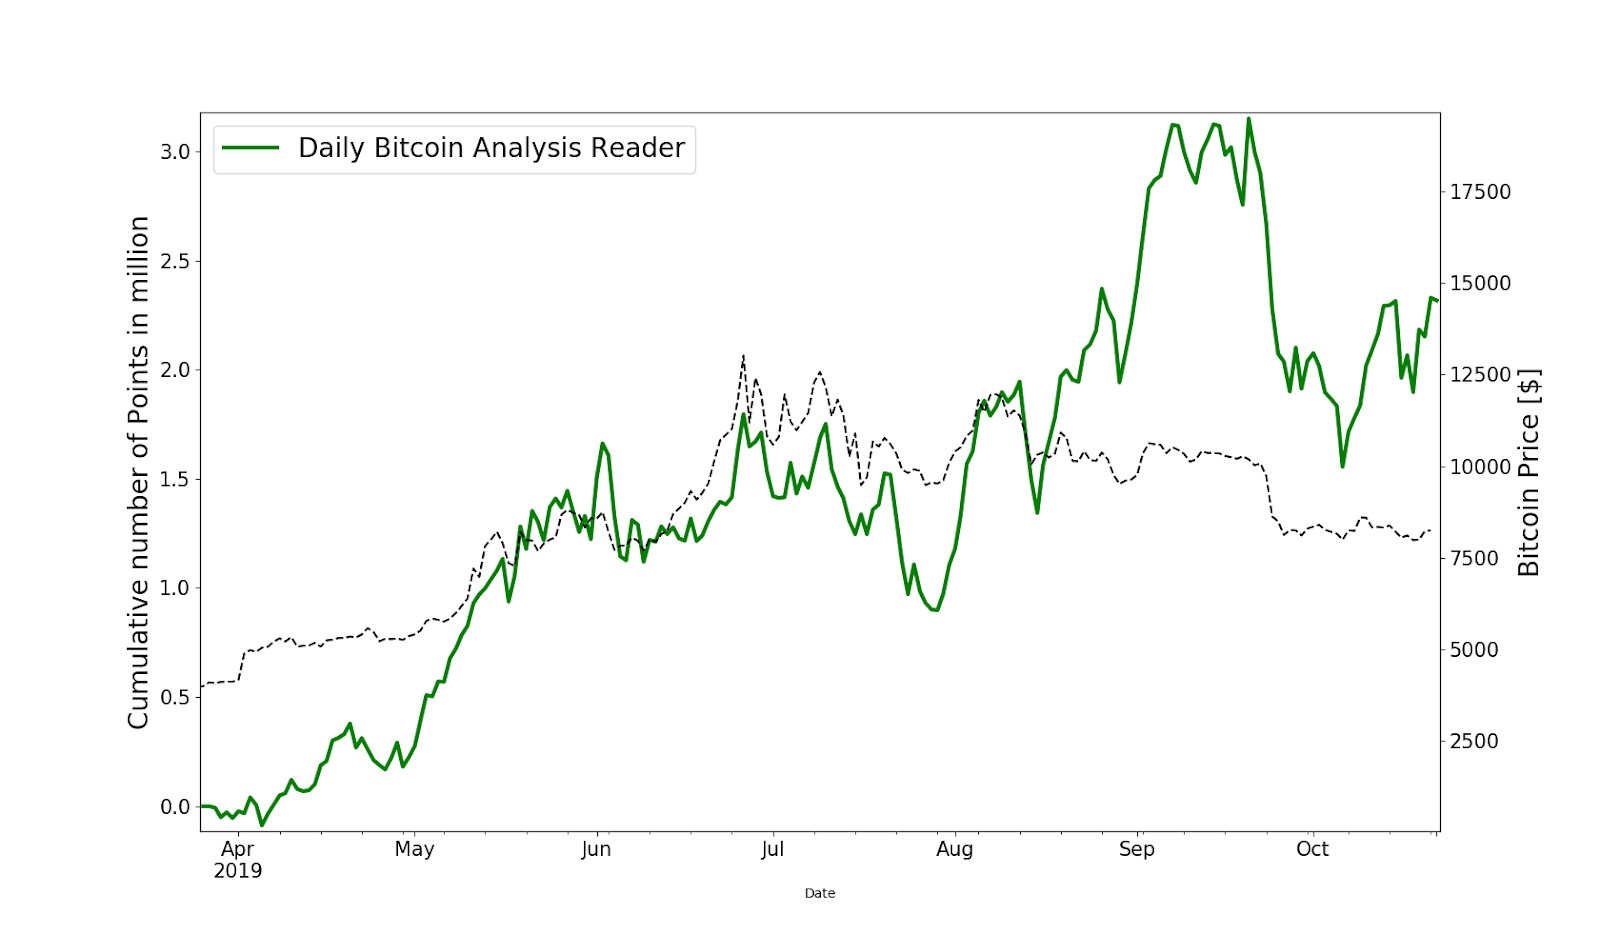 Daily Bitcoin analysis reader community app